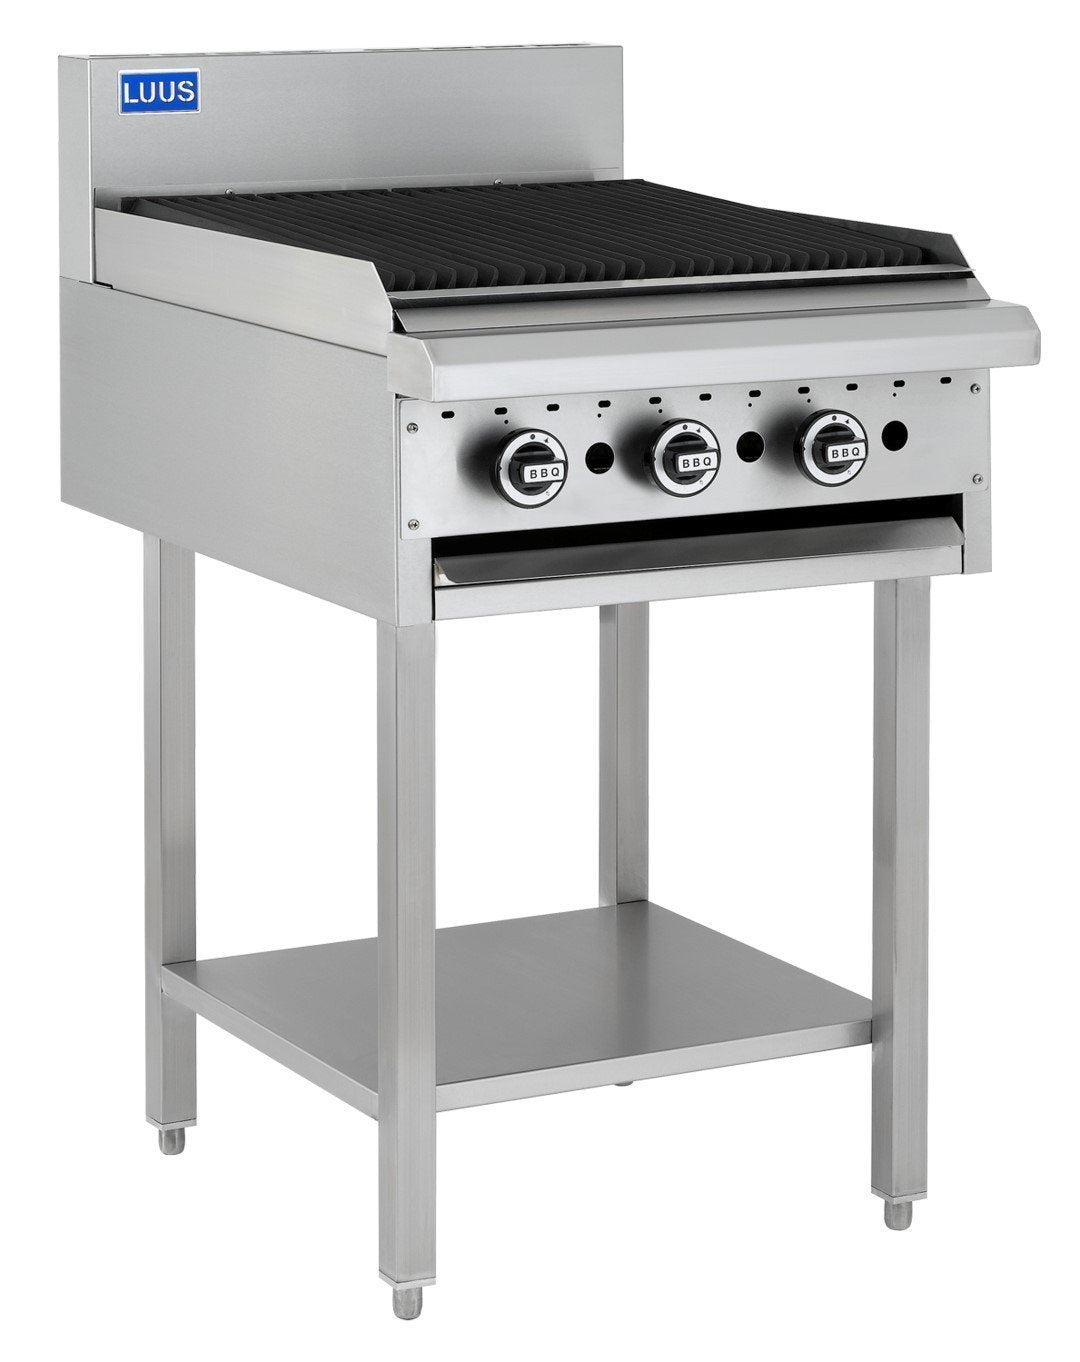 LUUS BCH-6C 600mm Char grill BBQ & Shelf